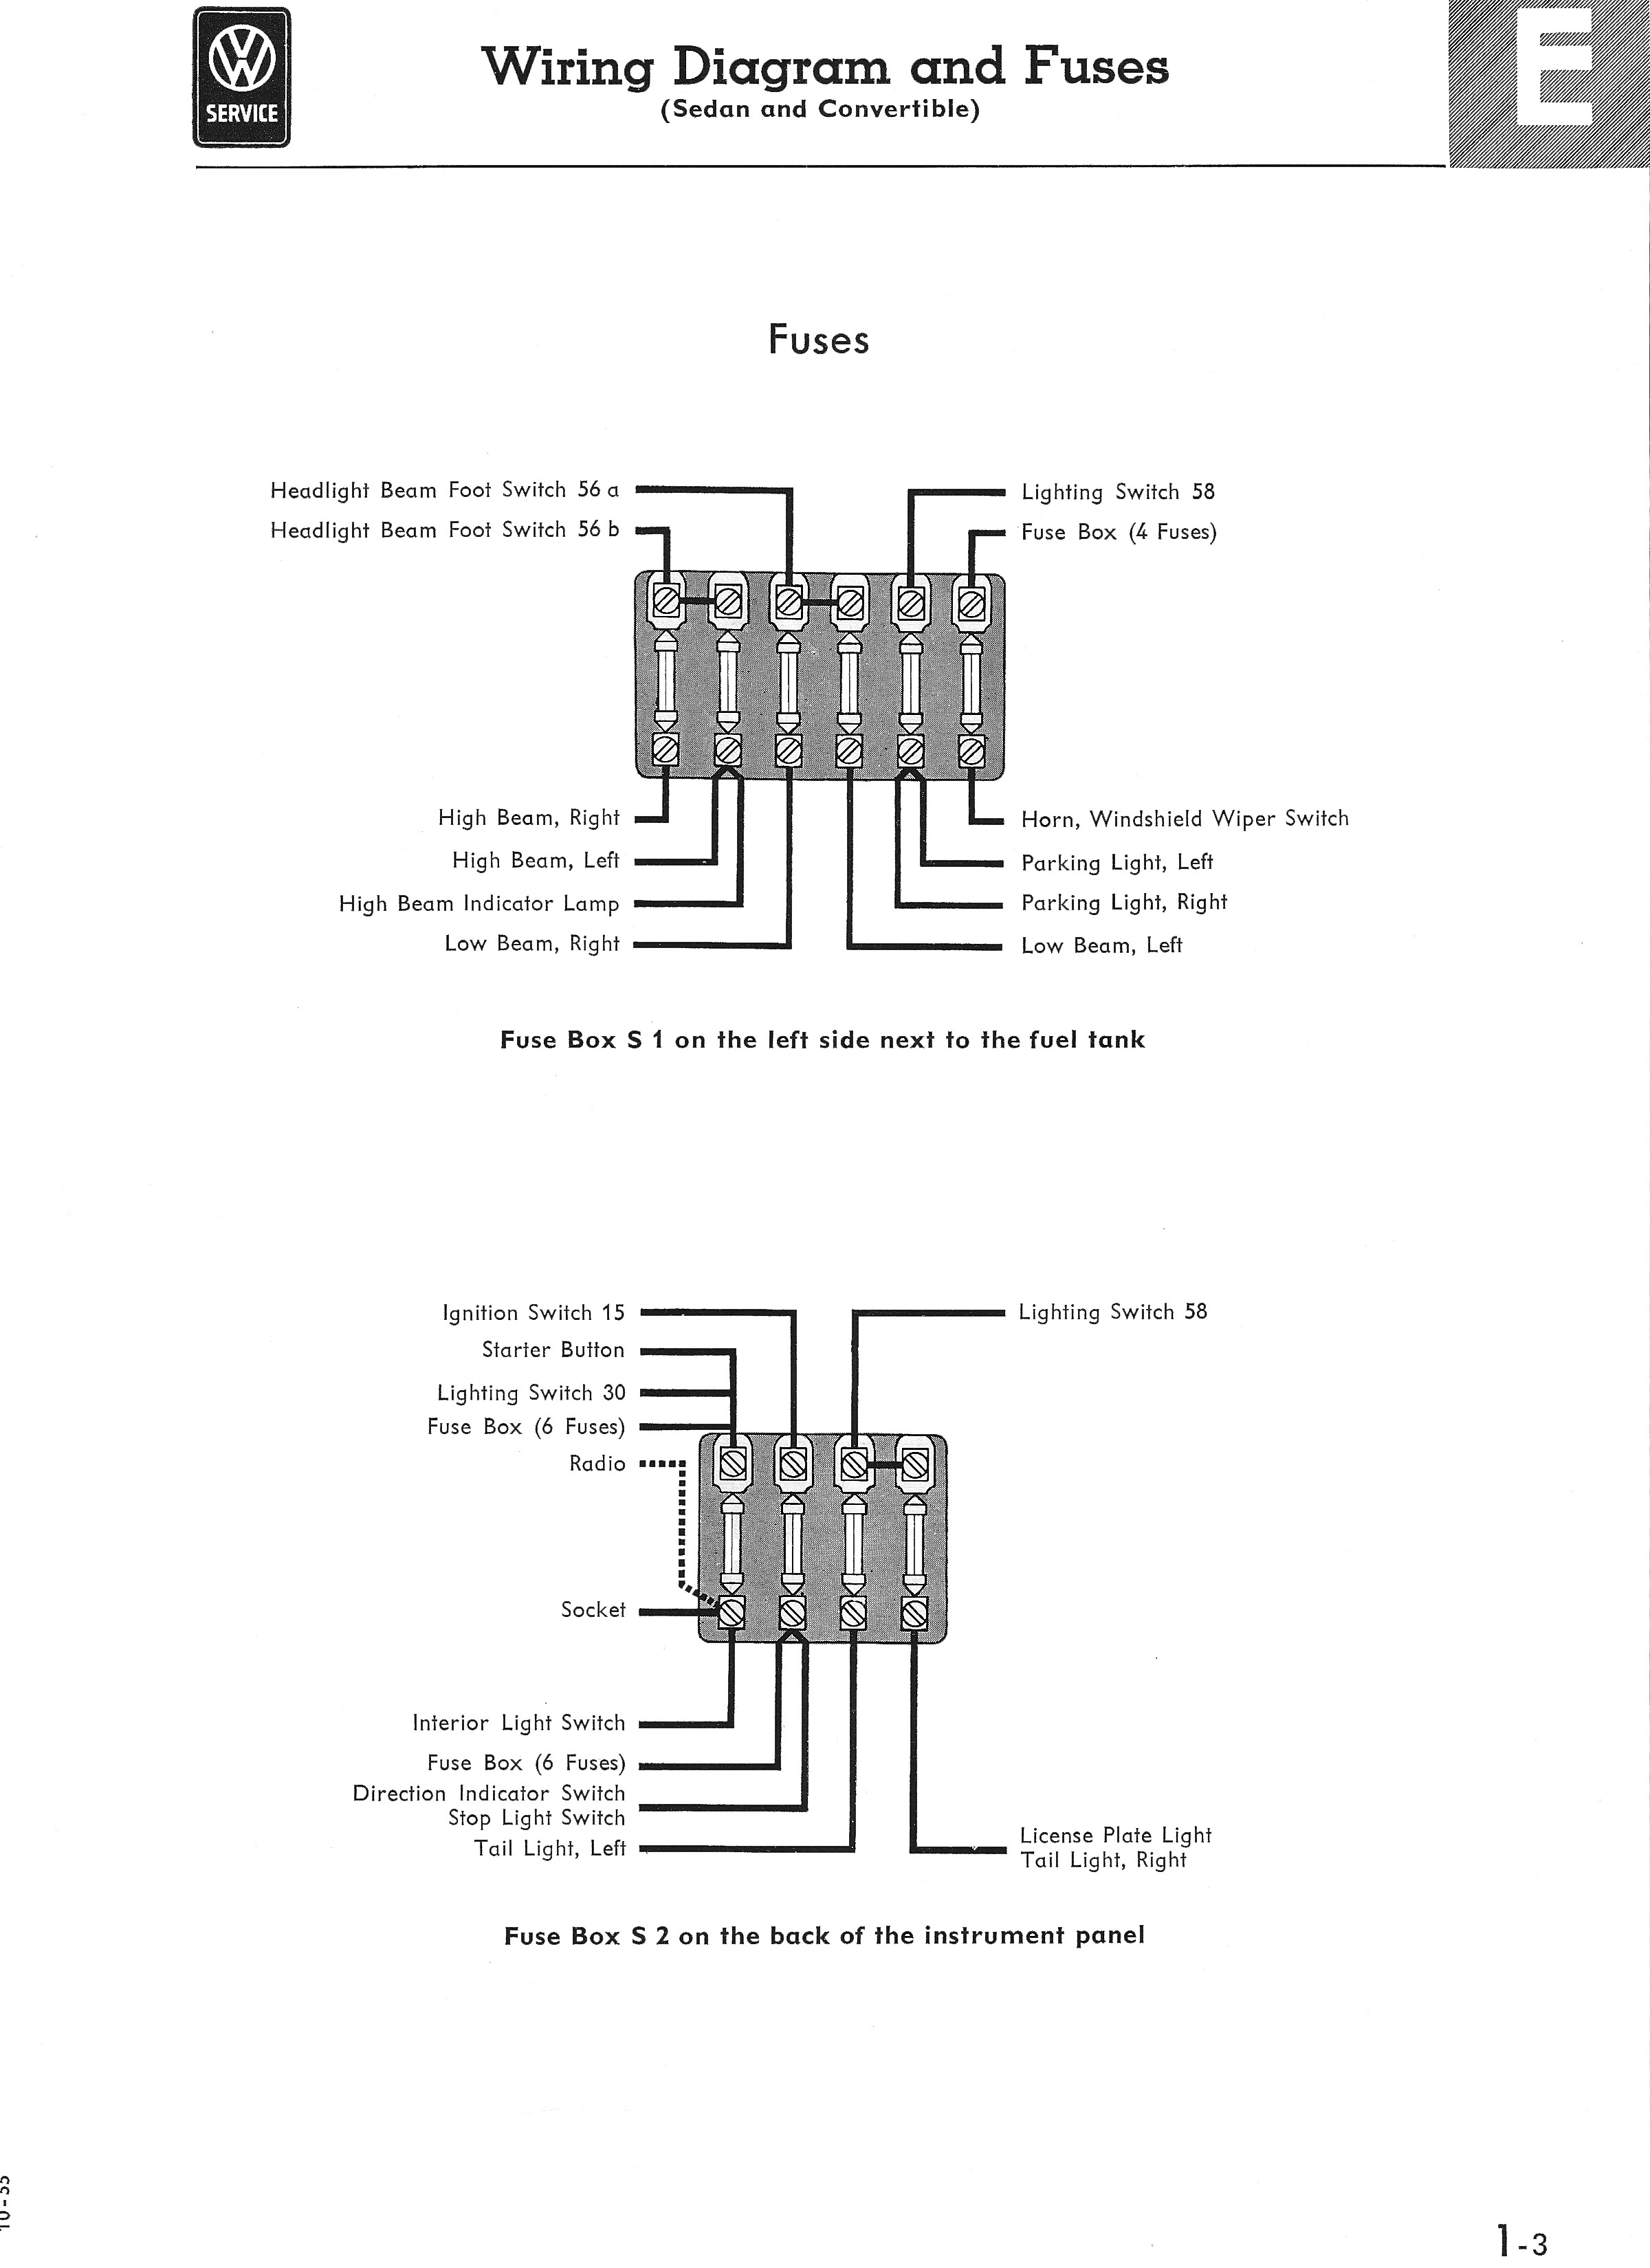 Fuse Wiring Diagram Images Gallery